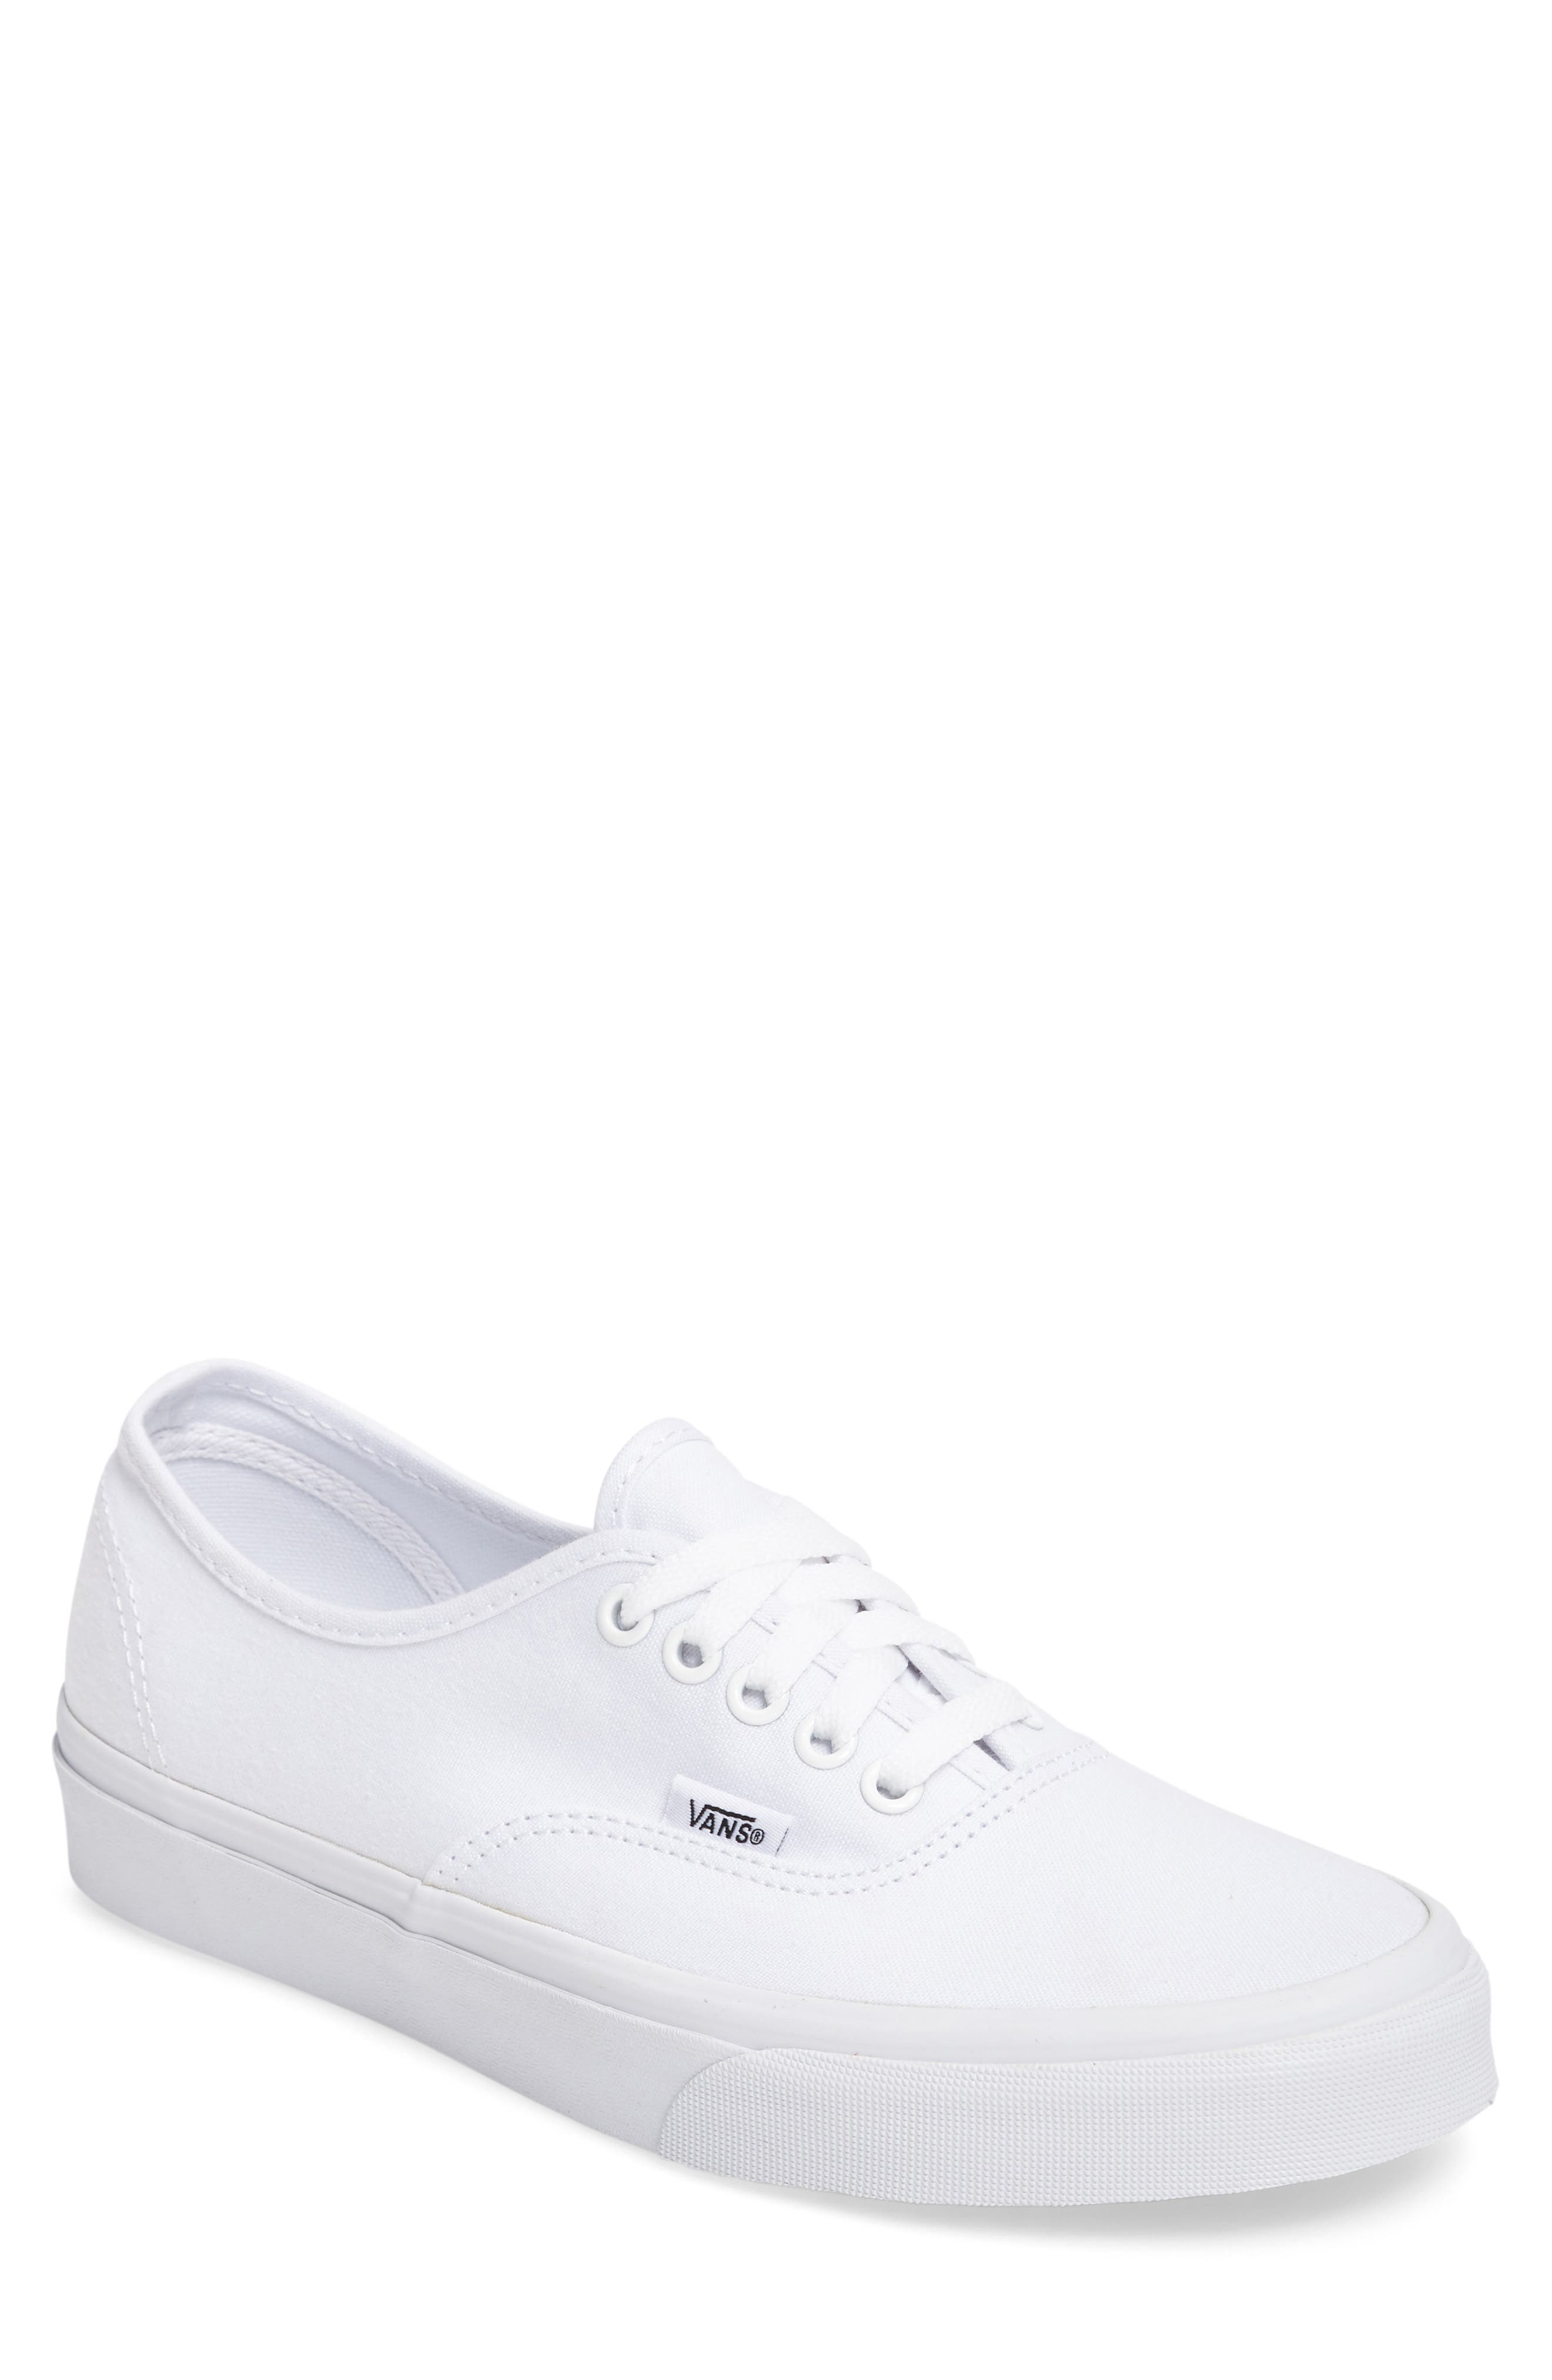 all white low top vans